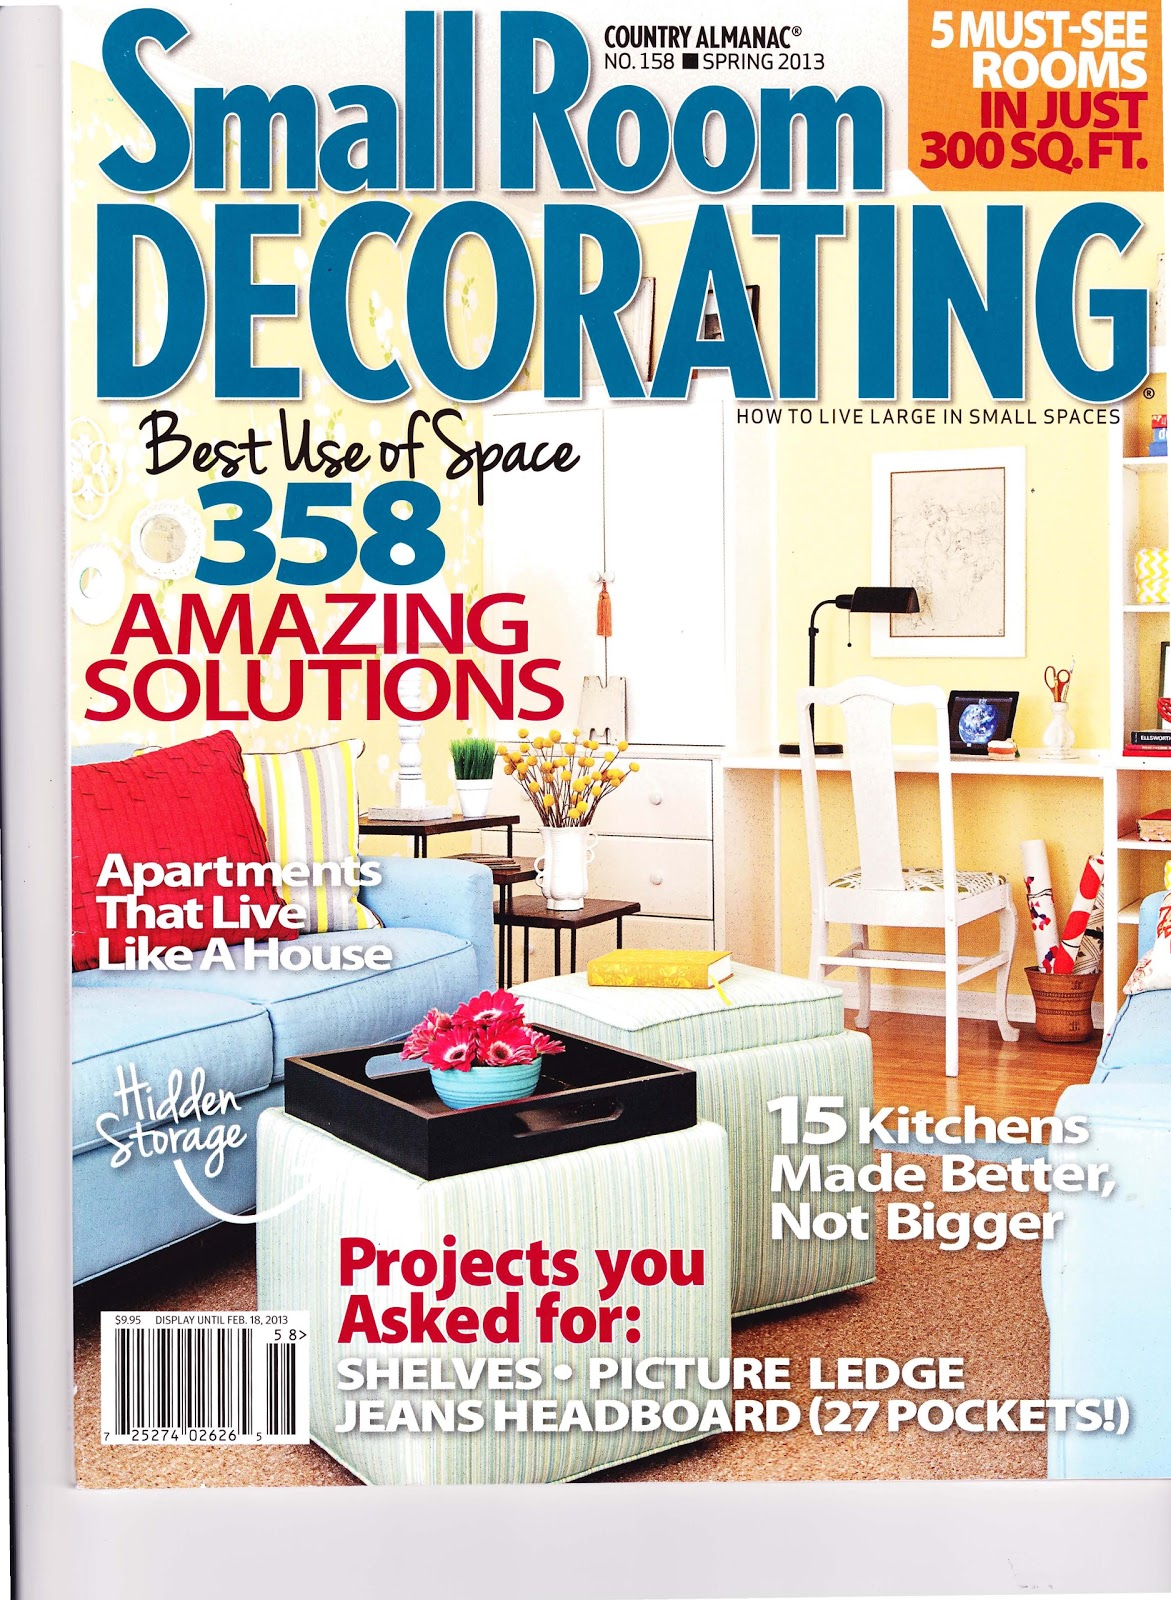 Emi interior design inc small room decorating magazine 2013 for Magazine living room ideas